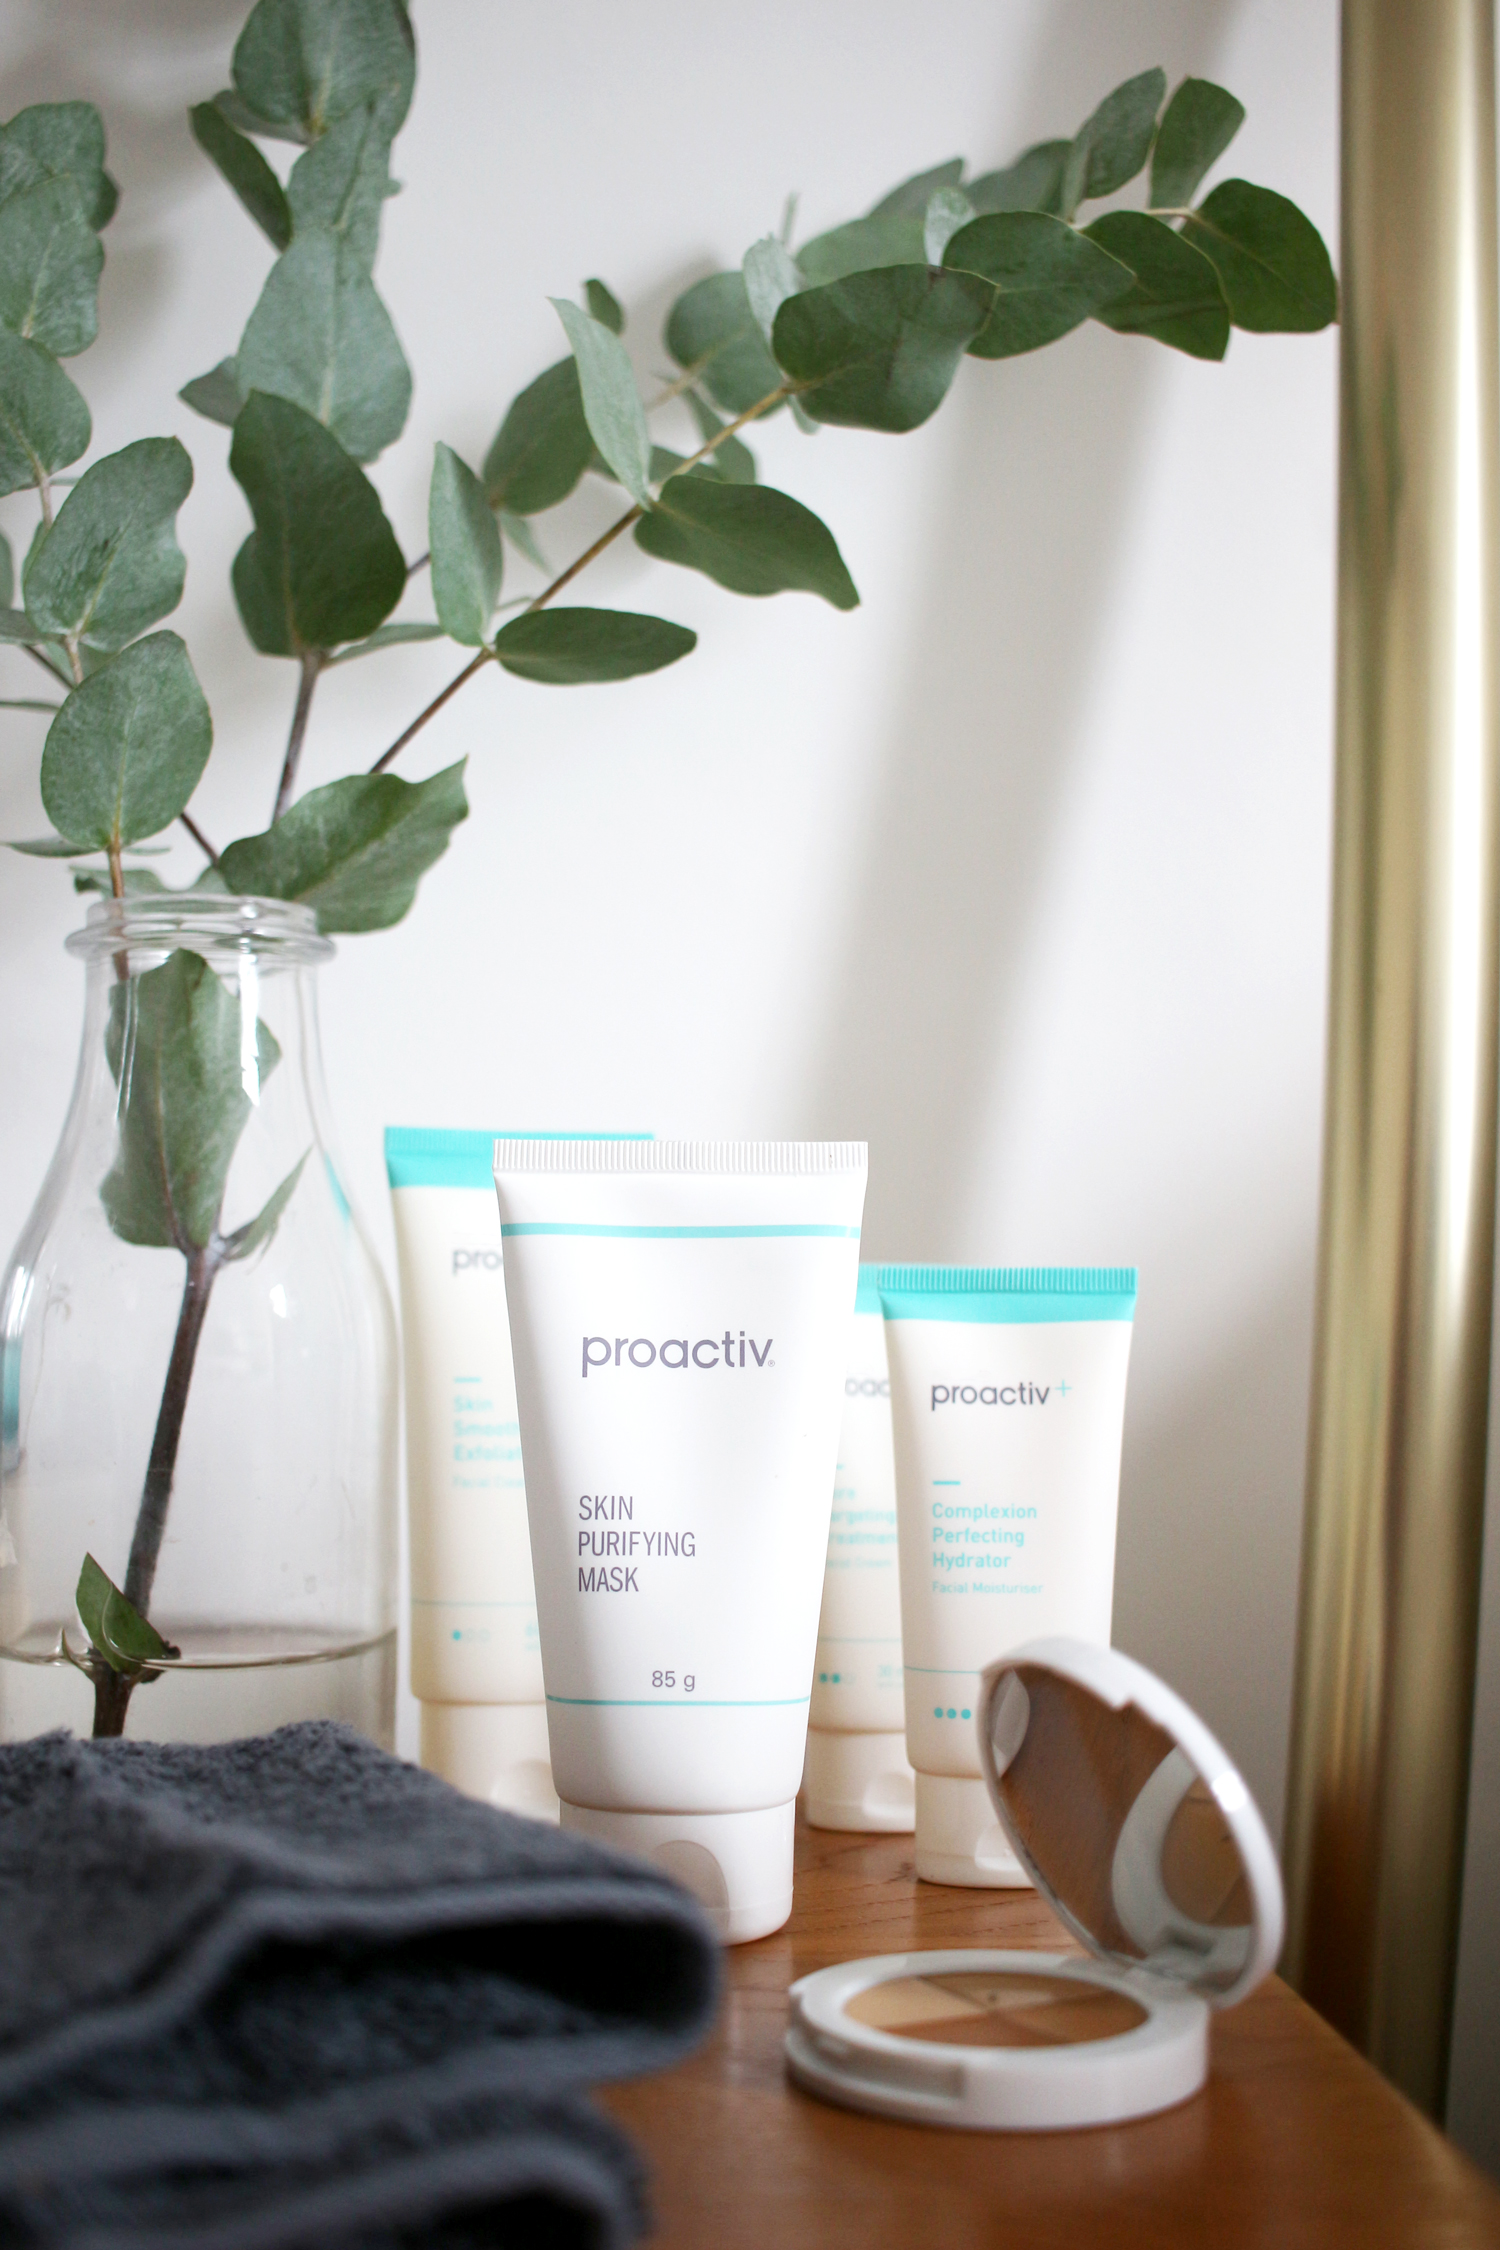 proactiv-skincare-review-before-and-after-photos-beauty-blogger-4